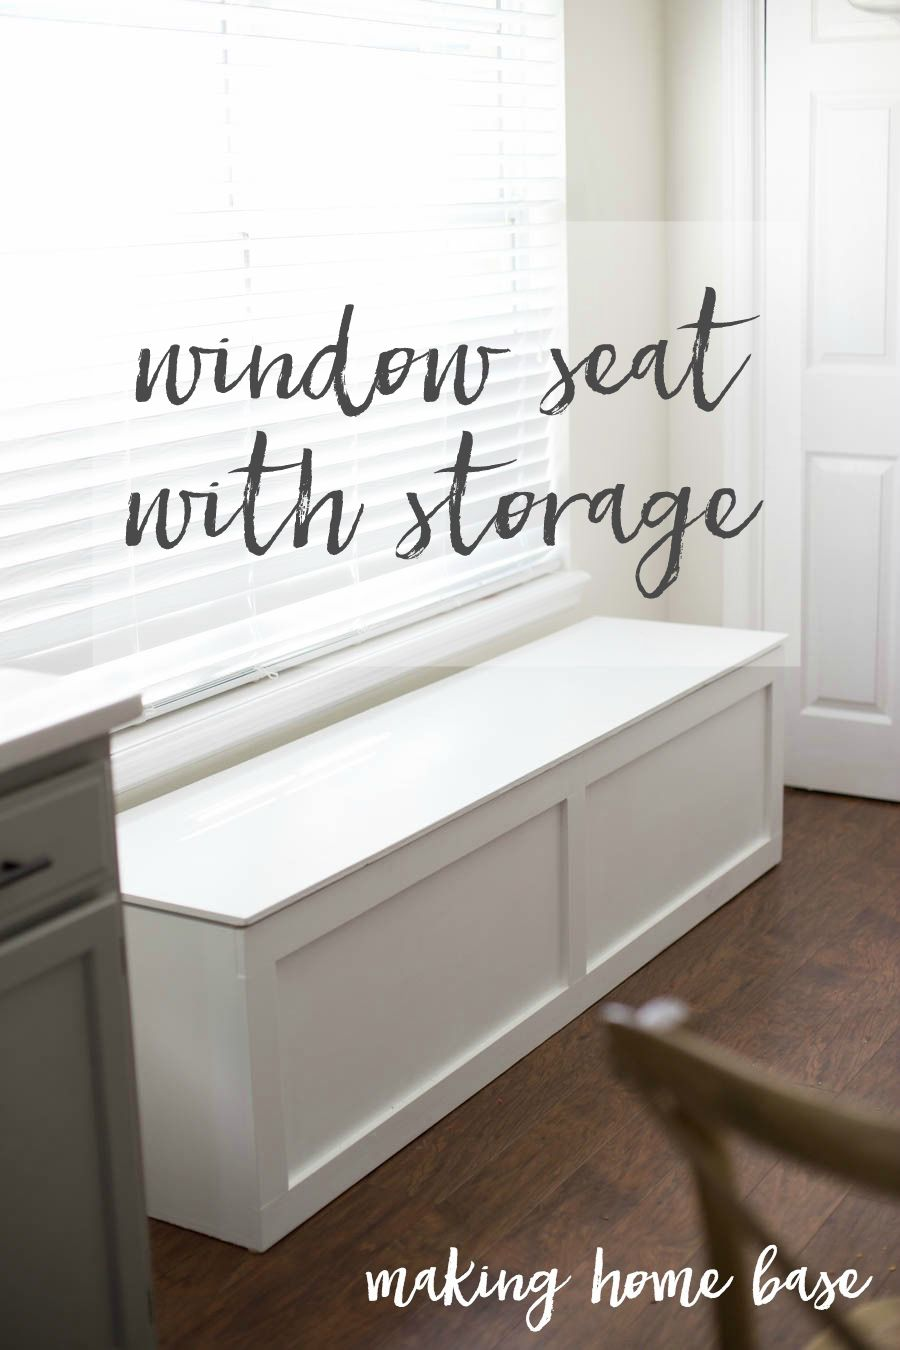 Window seat storage camps pinterest - Window Seat With Storage Gain Extra Storage Space By Create A Window Seat This